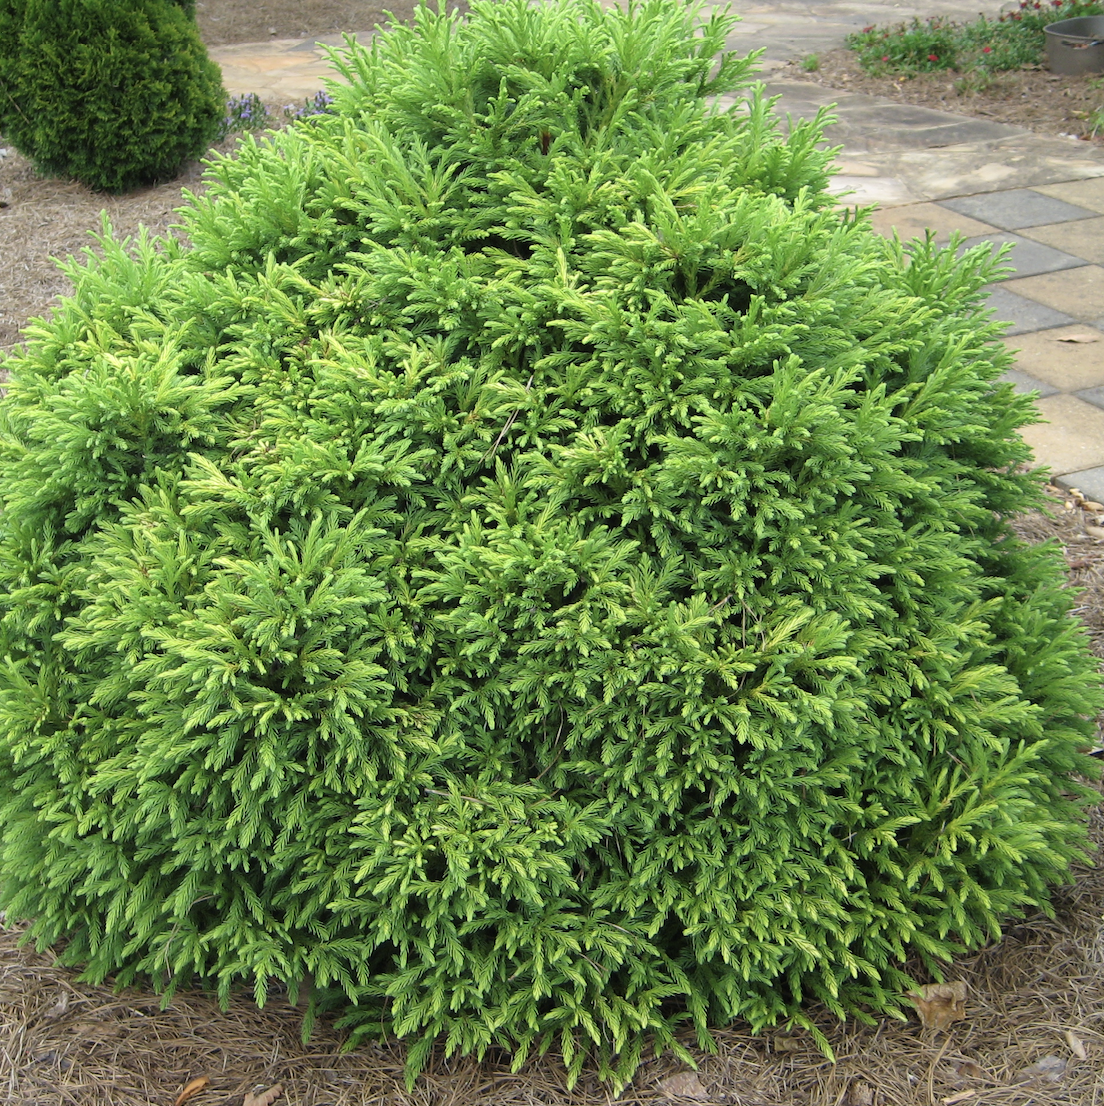 Cryptomeria japonica 'Globosa Nana' is a small shrub that keeps its round form without pruning. Be sure to get the correct cultivar, as Cryptomeria japonica is typically a tall pyramidal tree.